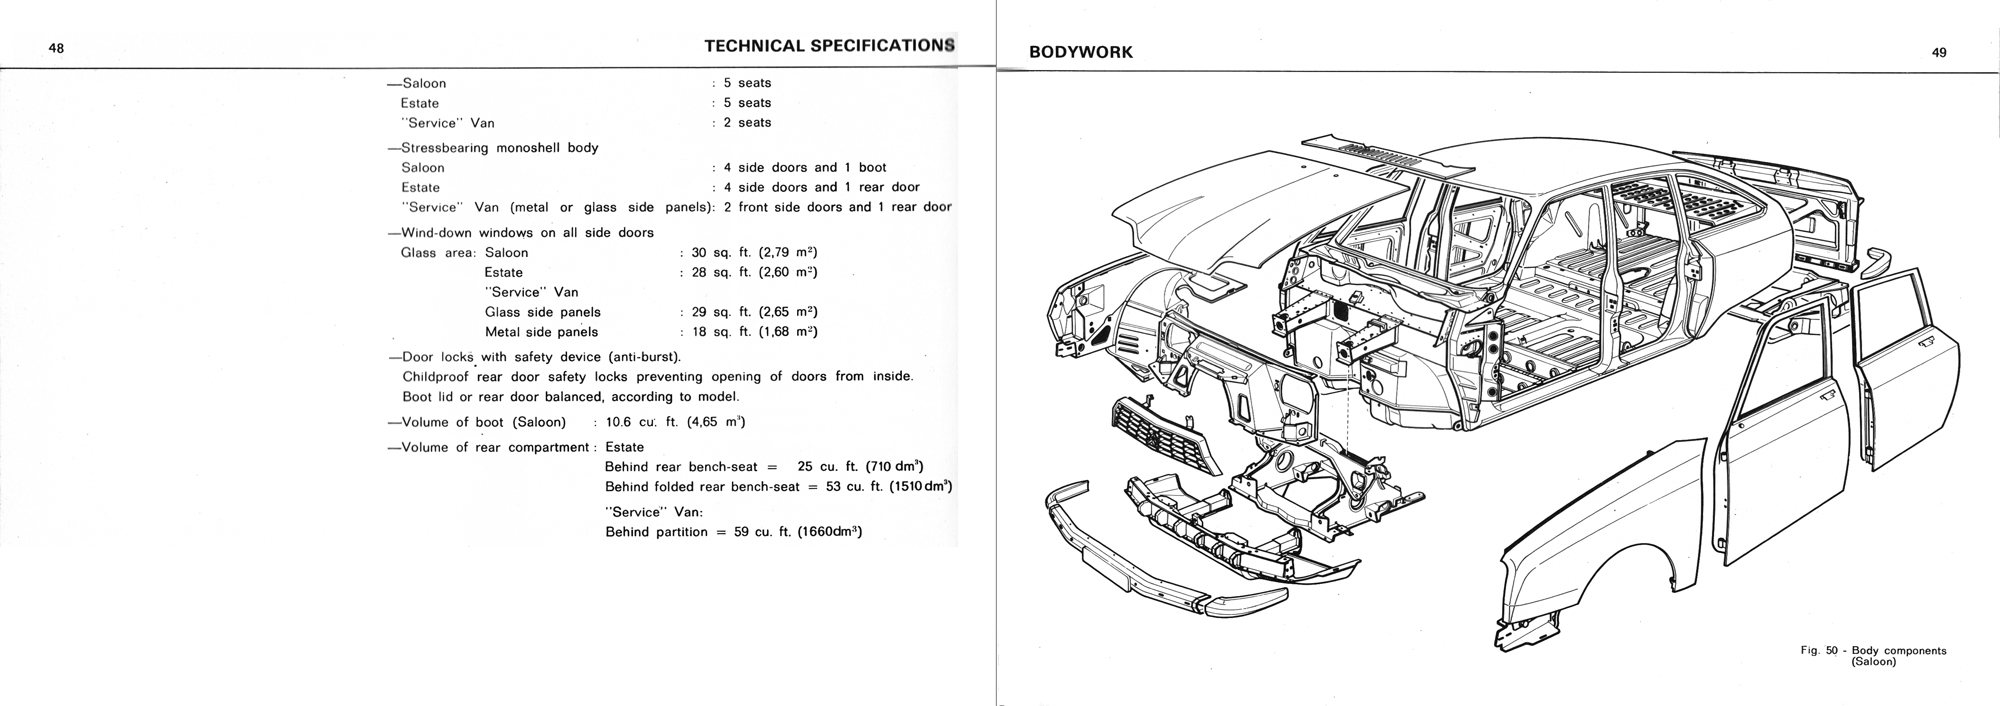 1975 Citroën GS owner's manual Page 2